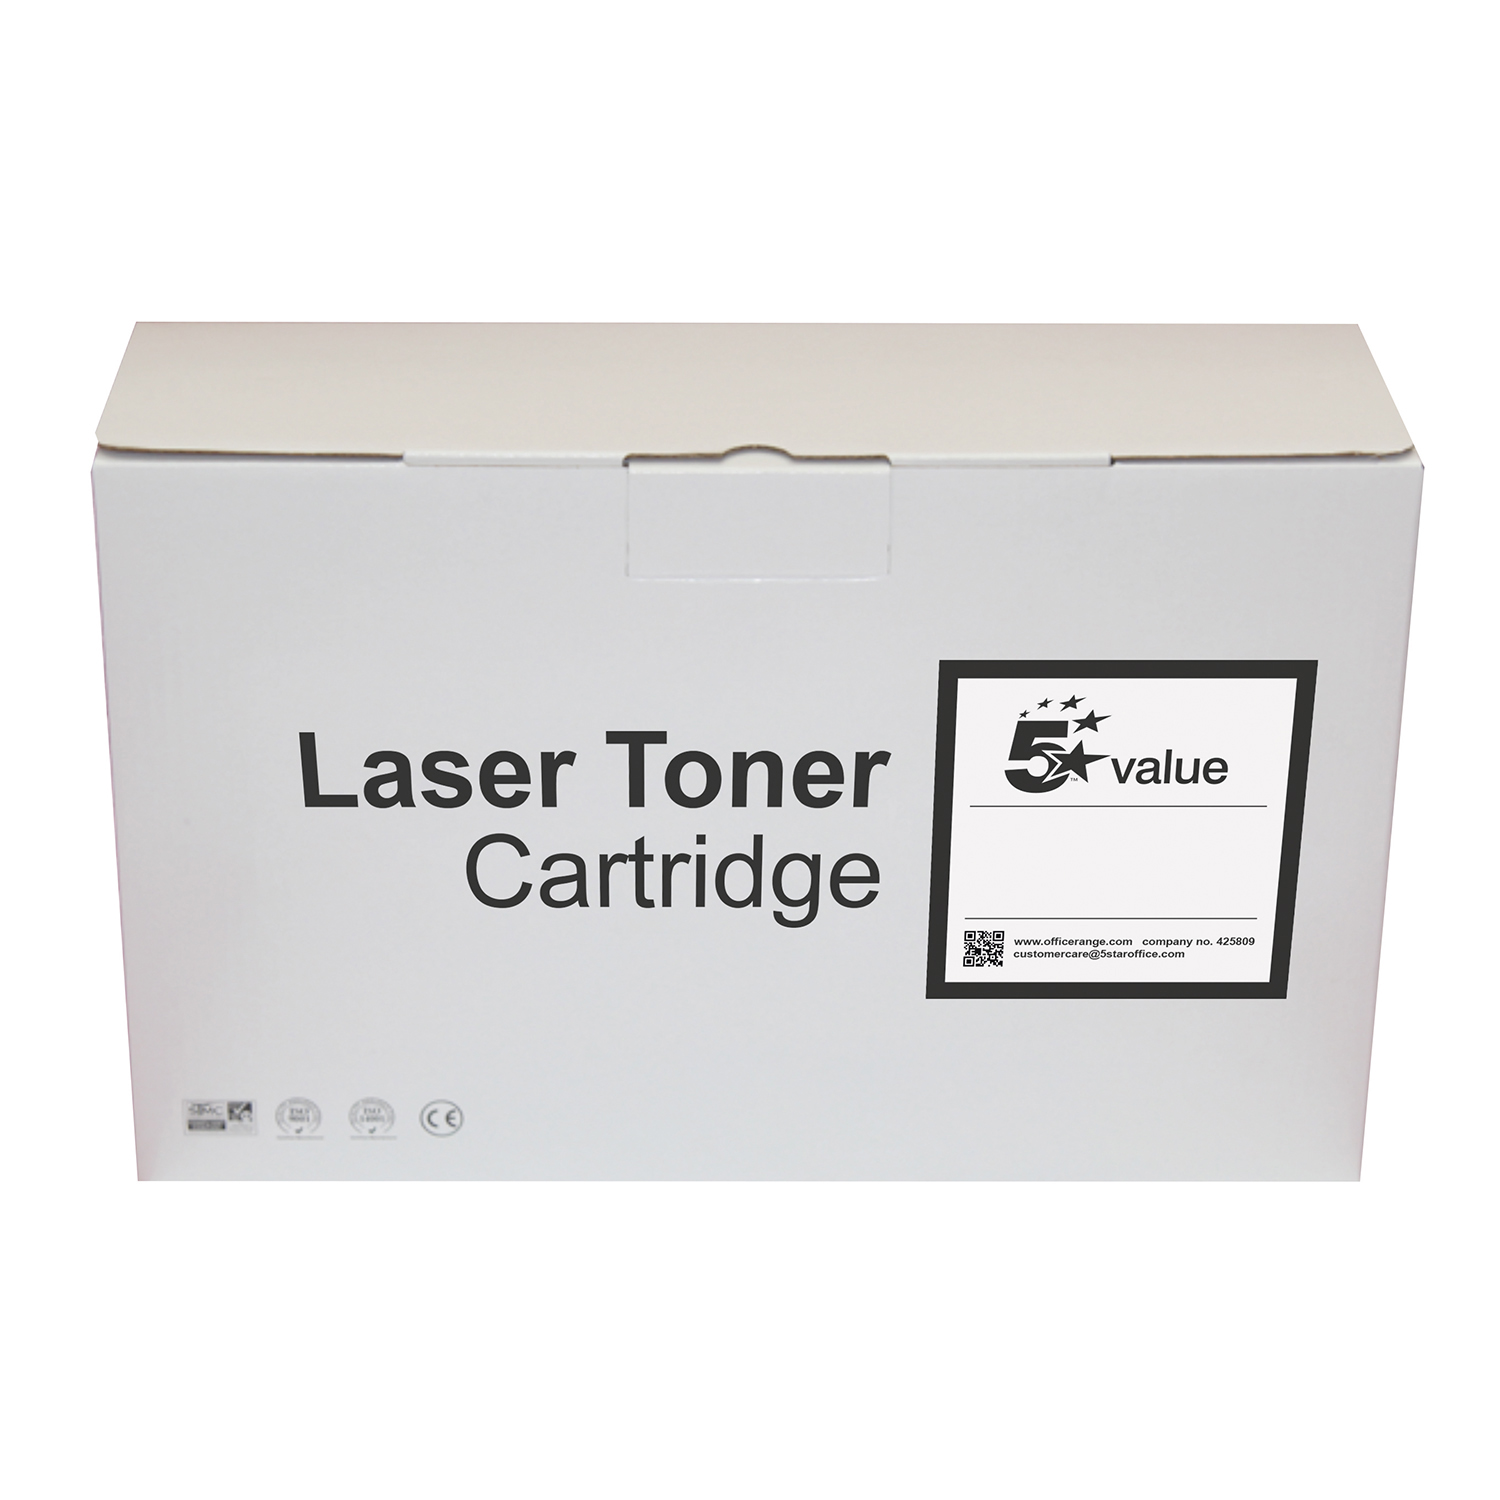 5 Star Value Remanufactured High Capacity Toner Cartridge Black [Brother TN2420 Alternative]